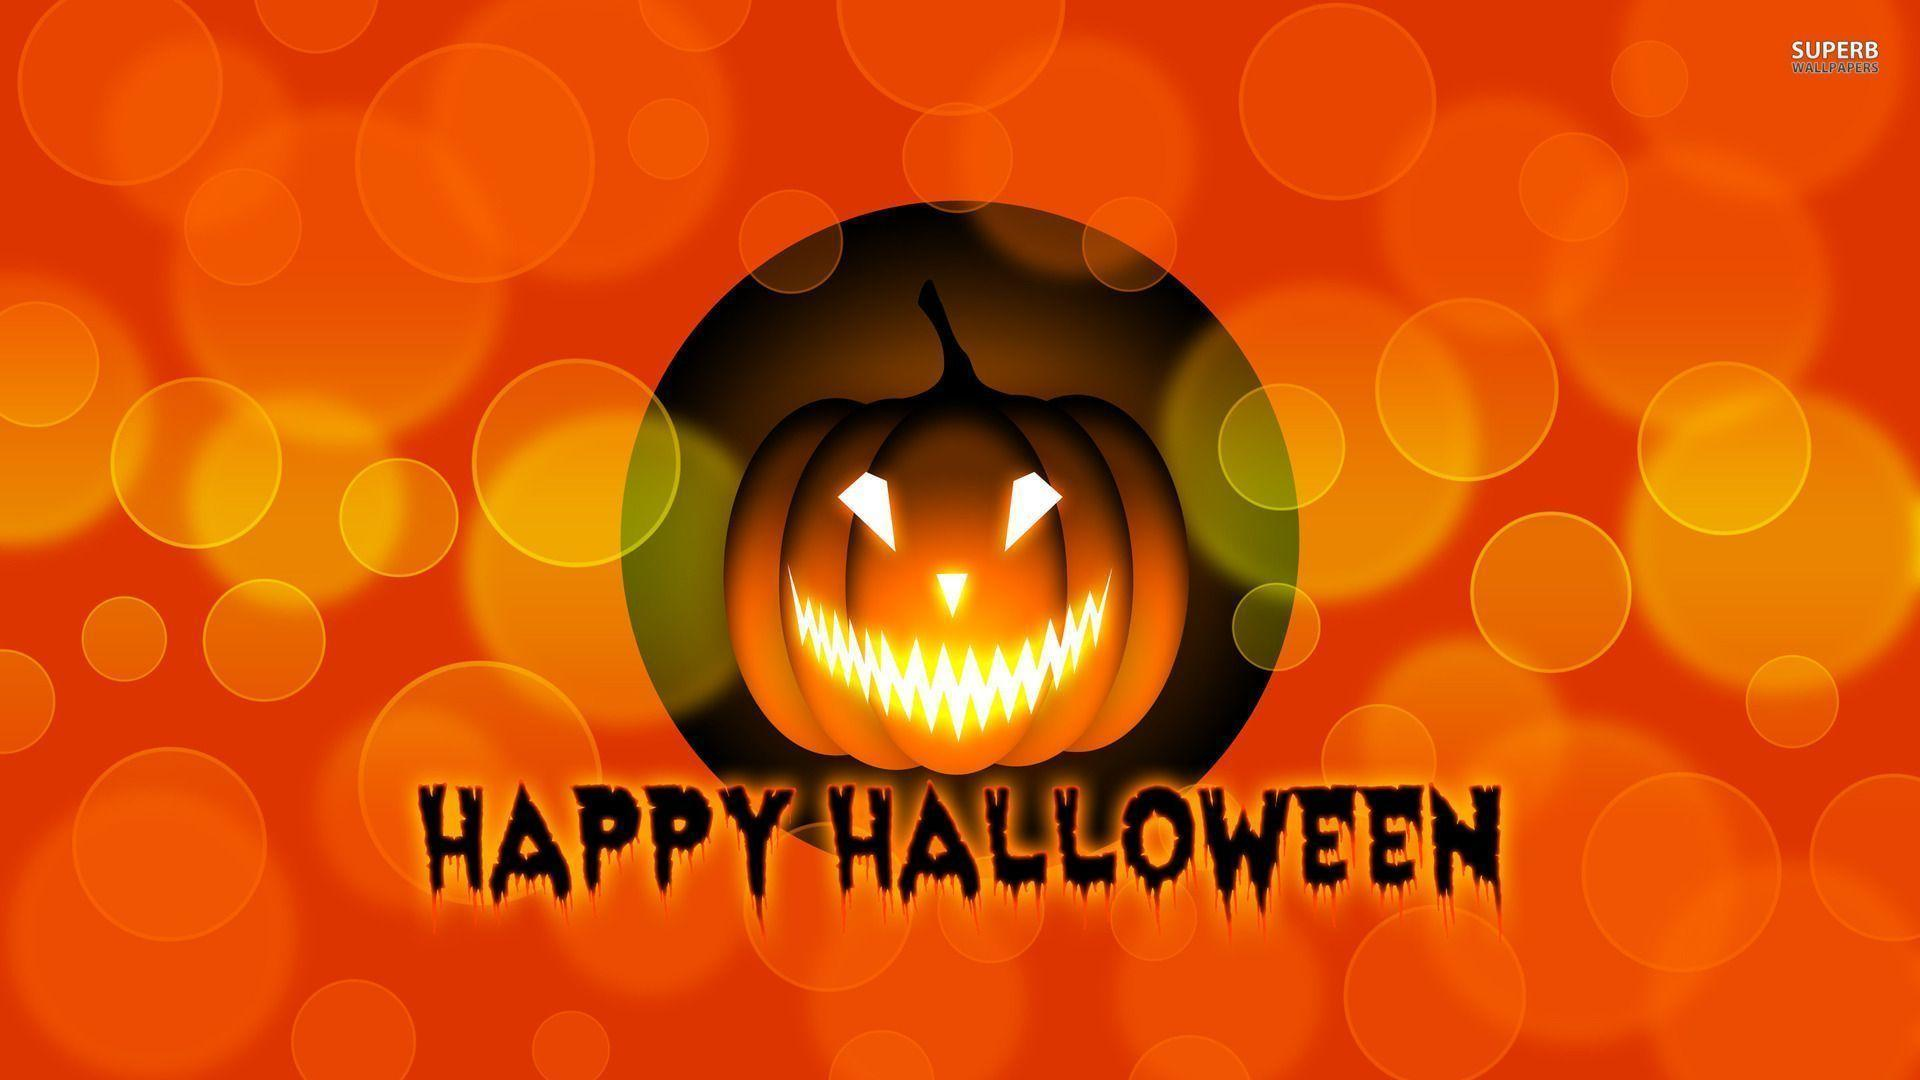 happy halloween wallpapers - photo #23